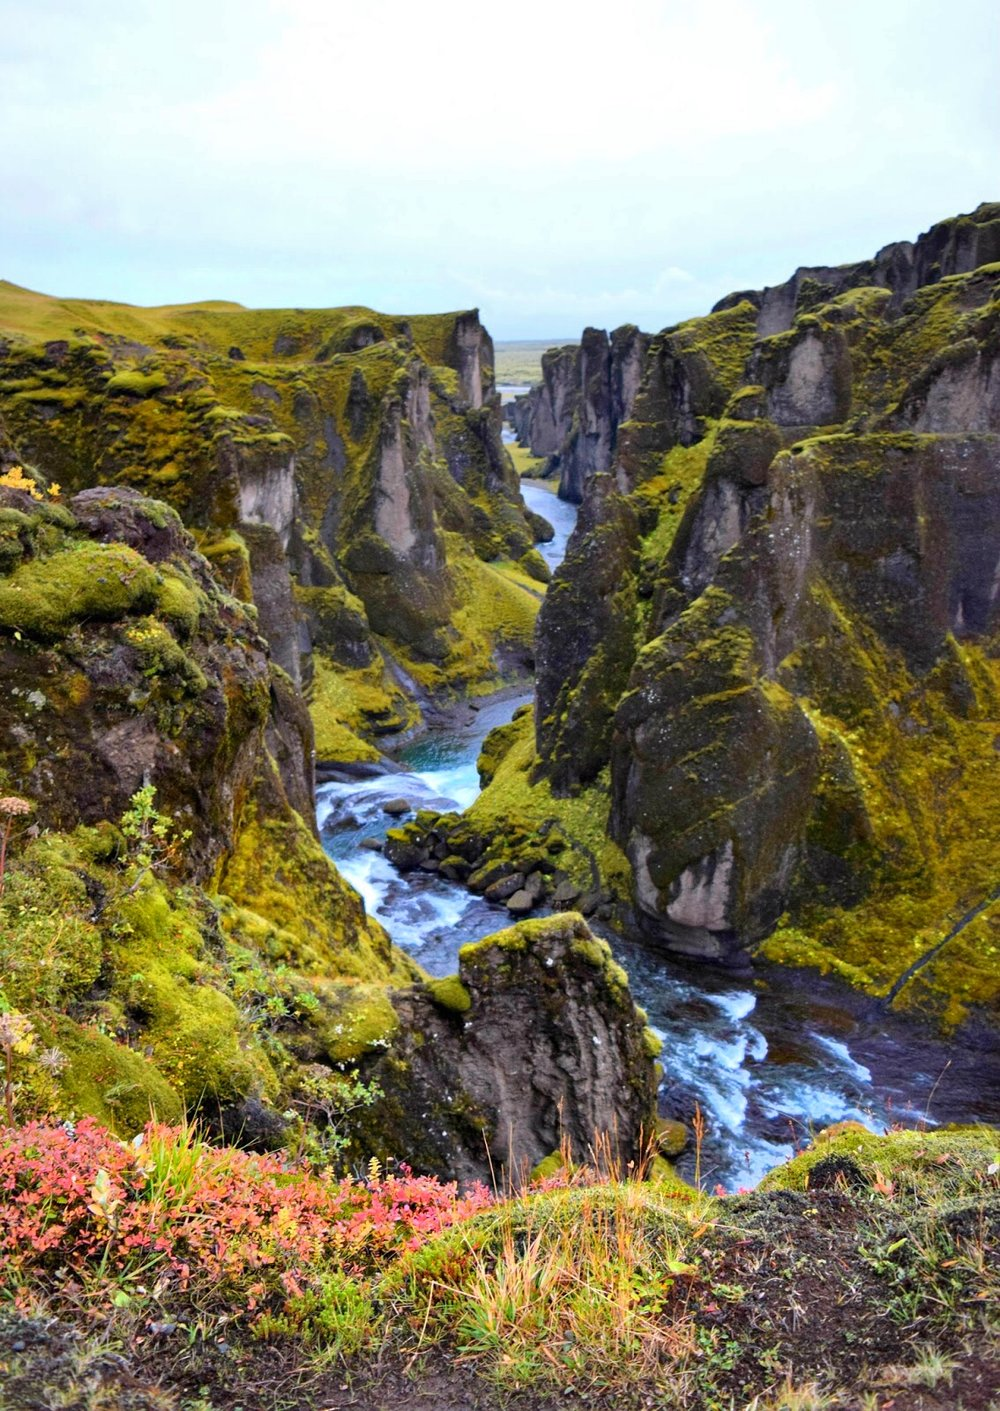 Fjaðrárgljúfur Canyon, carved by glacier runoff over thousands of years